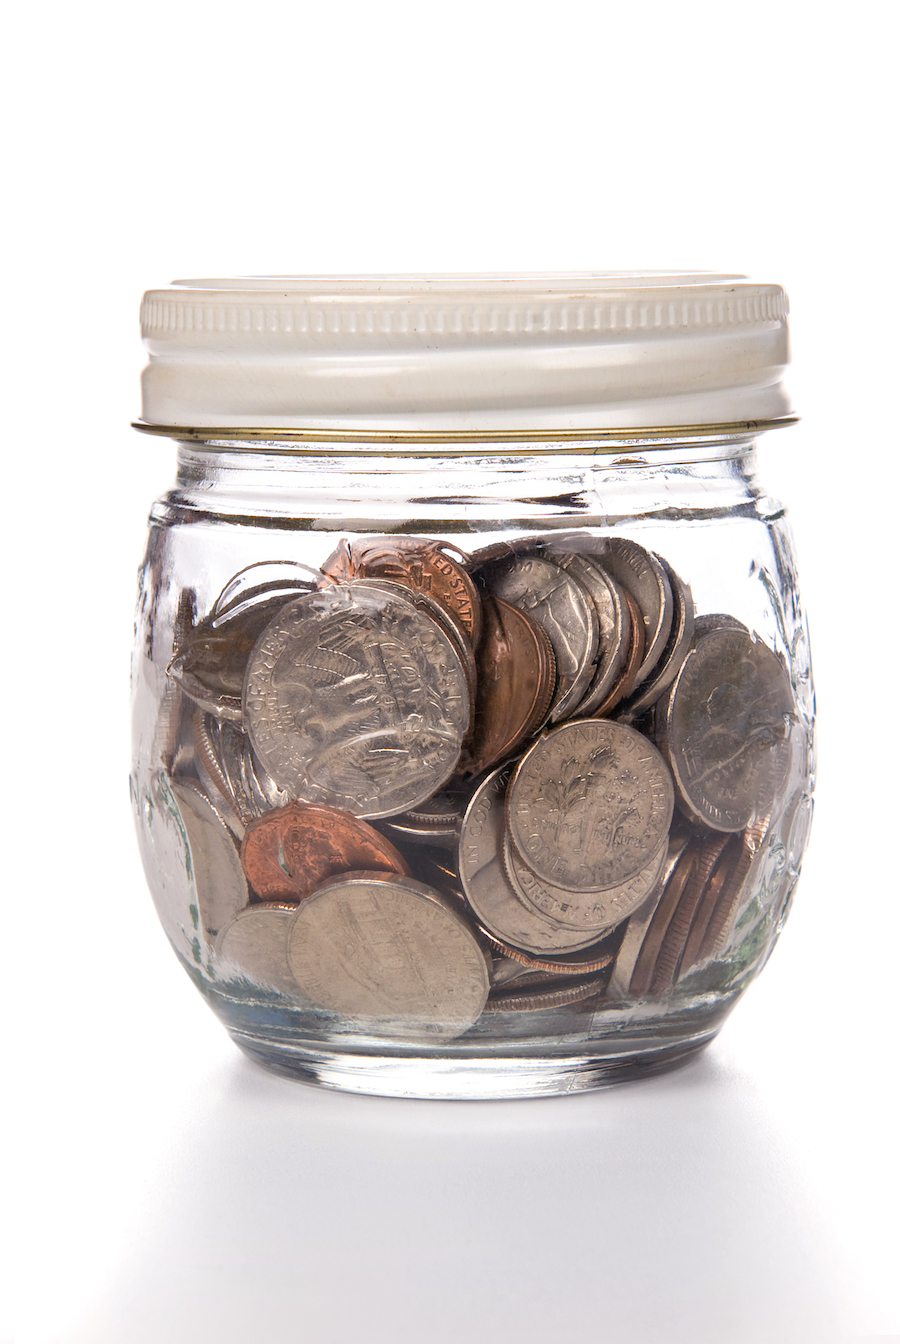 a jar full of american coins